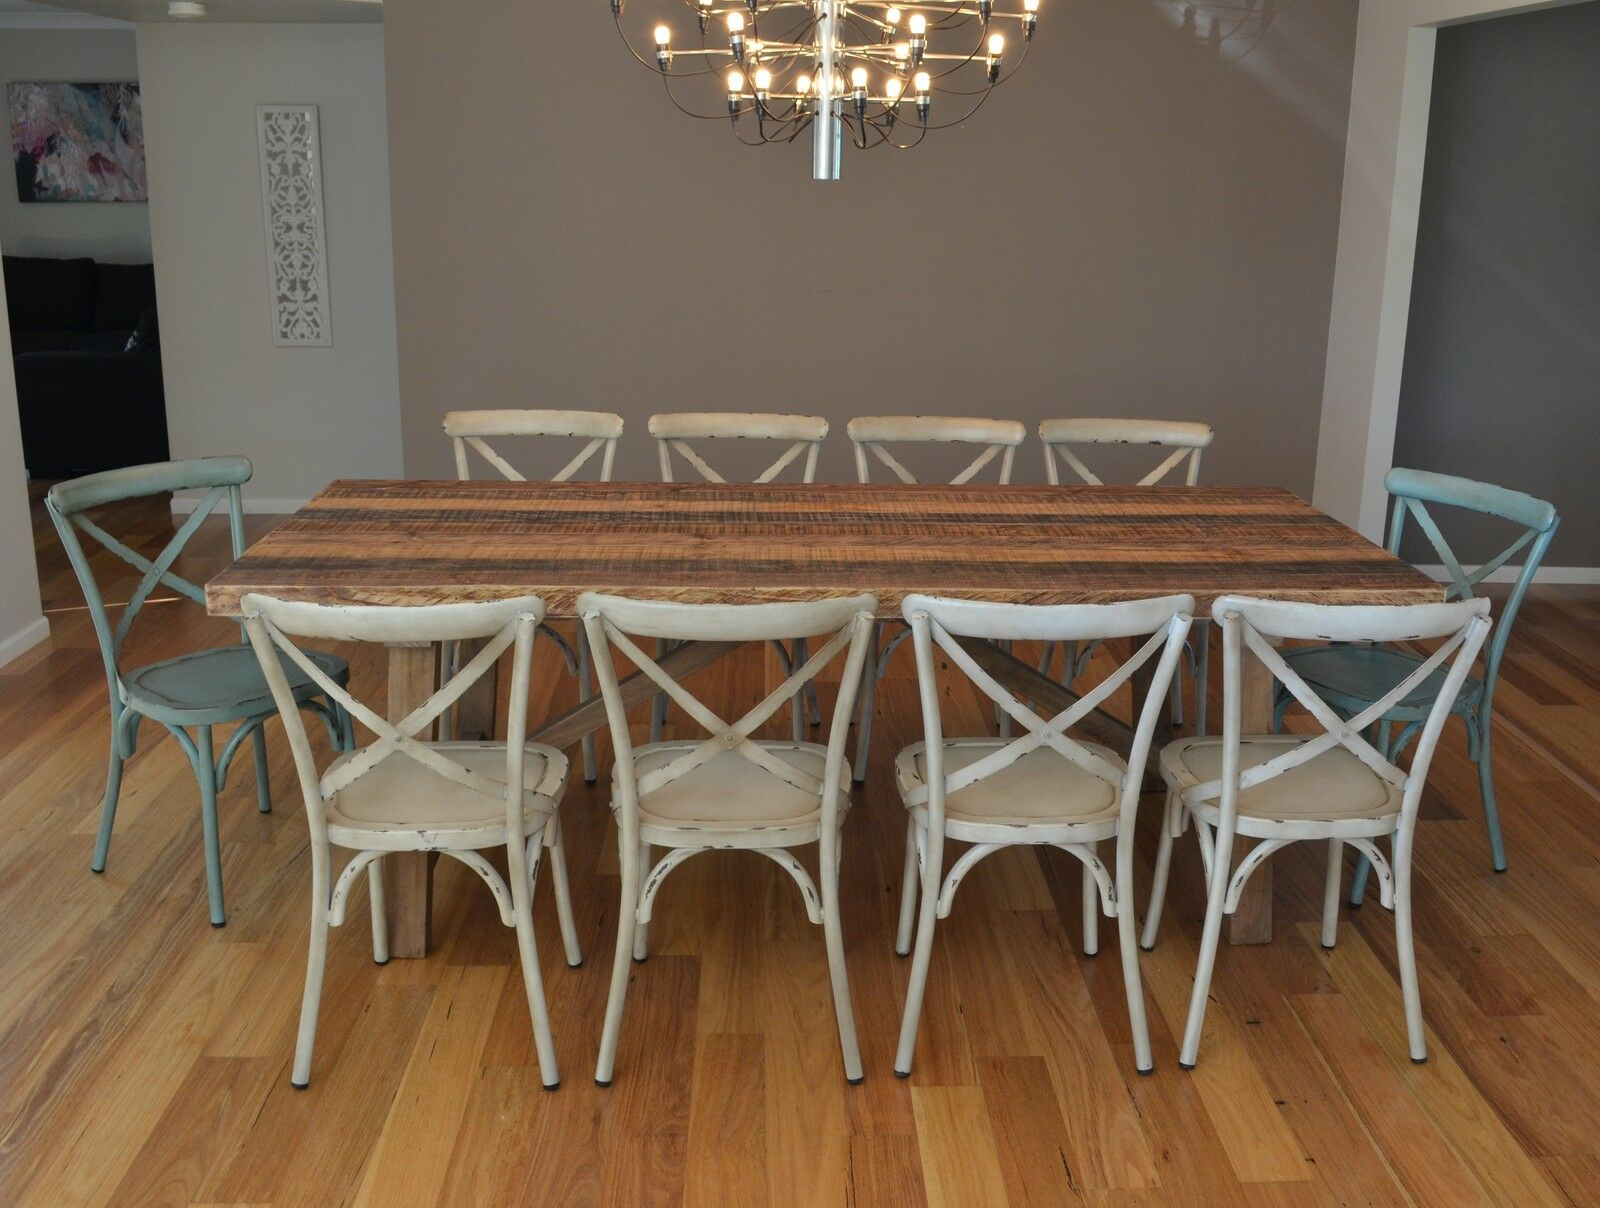 New Large 10 Seater Recycled Timber Dining Table Setting